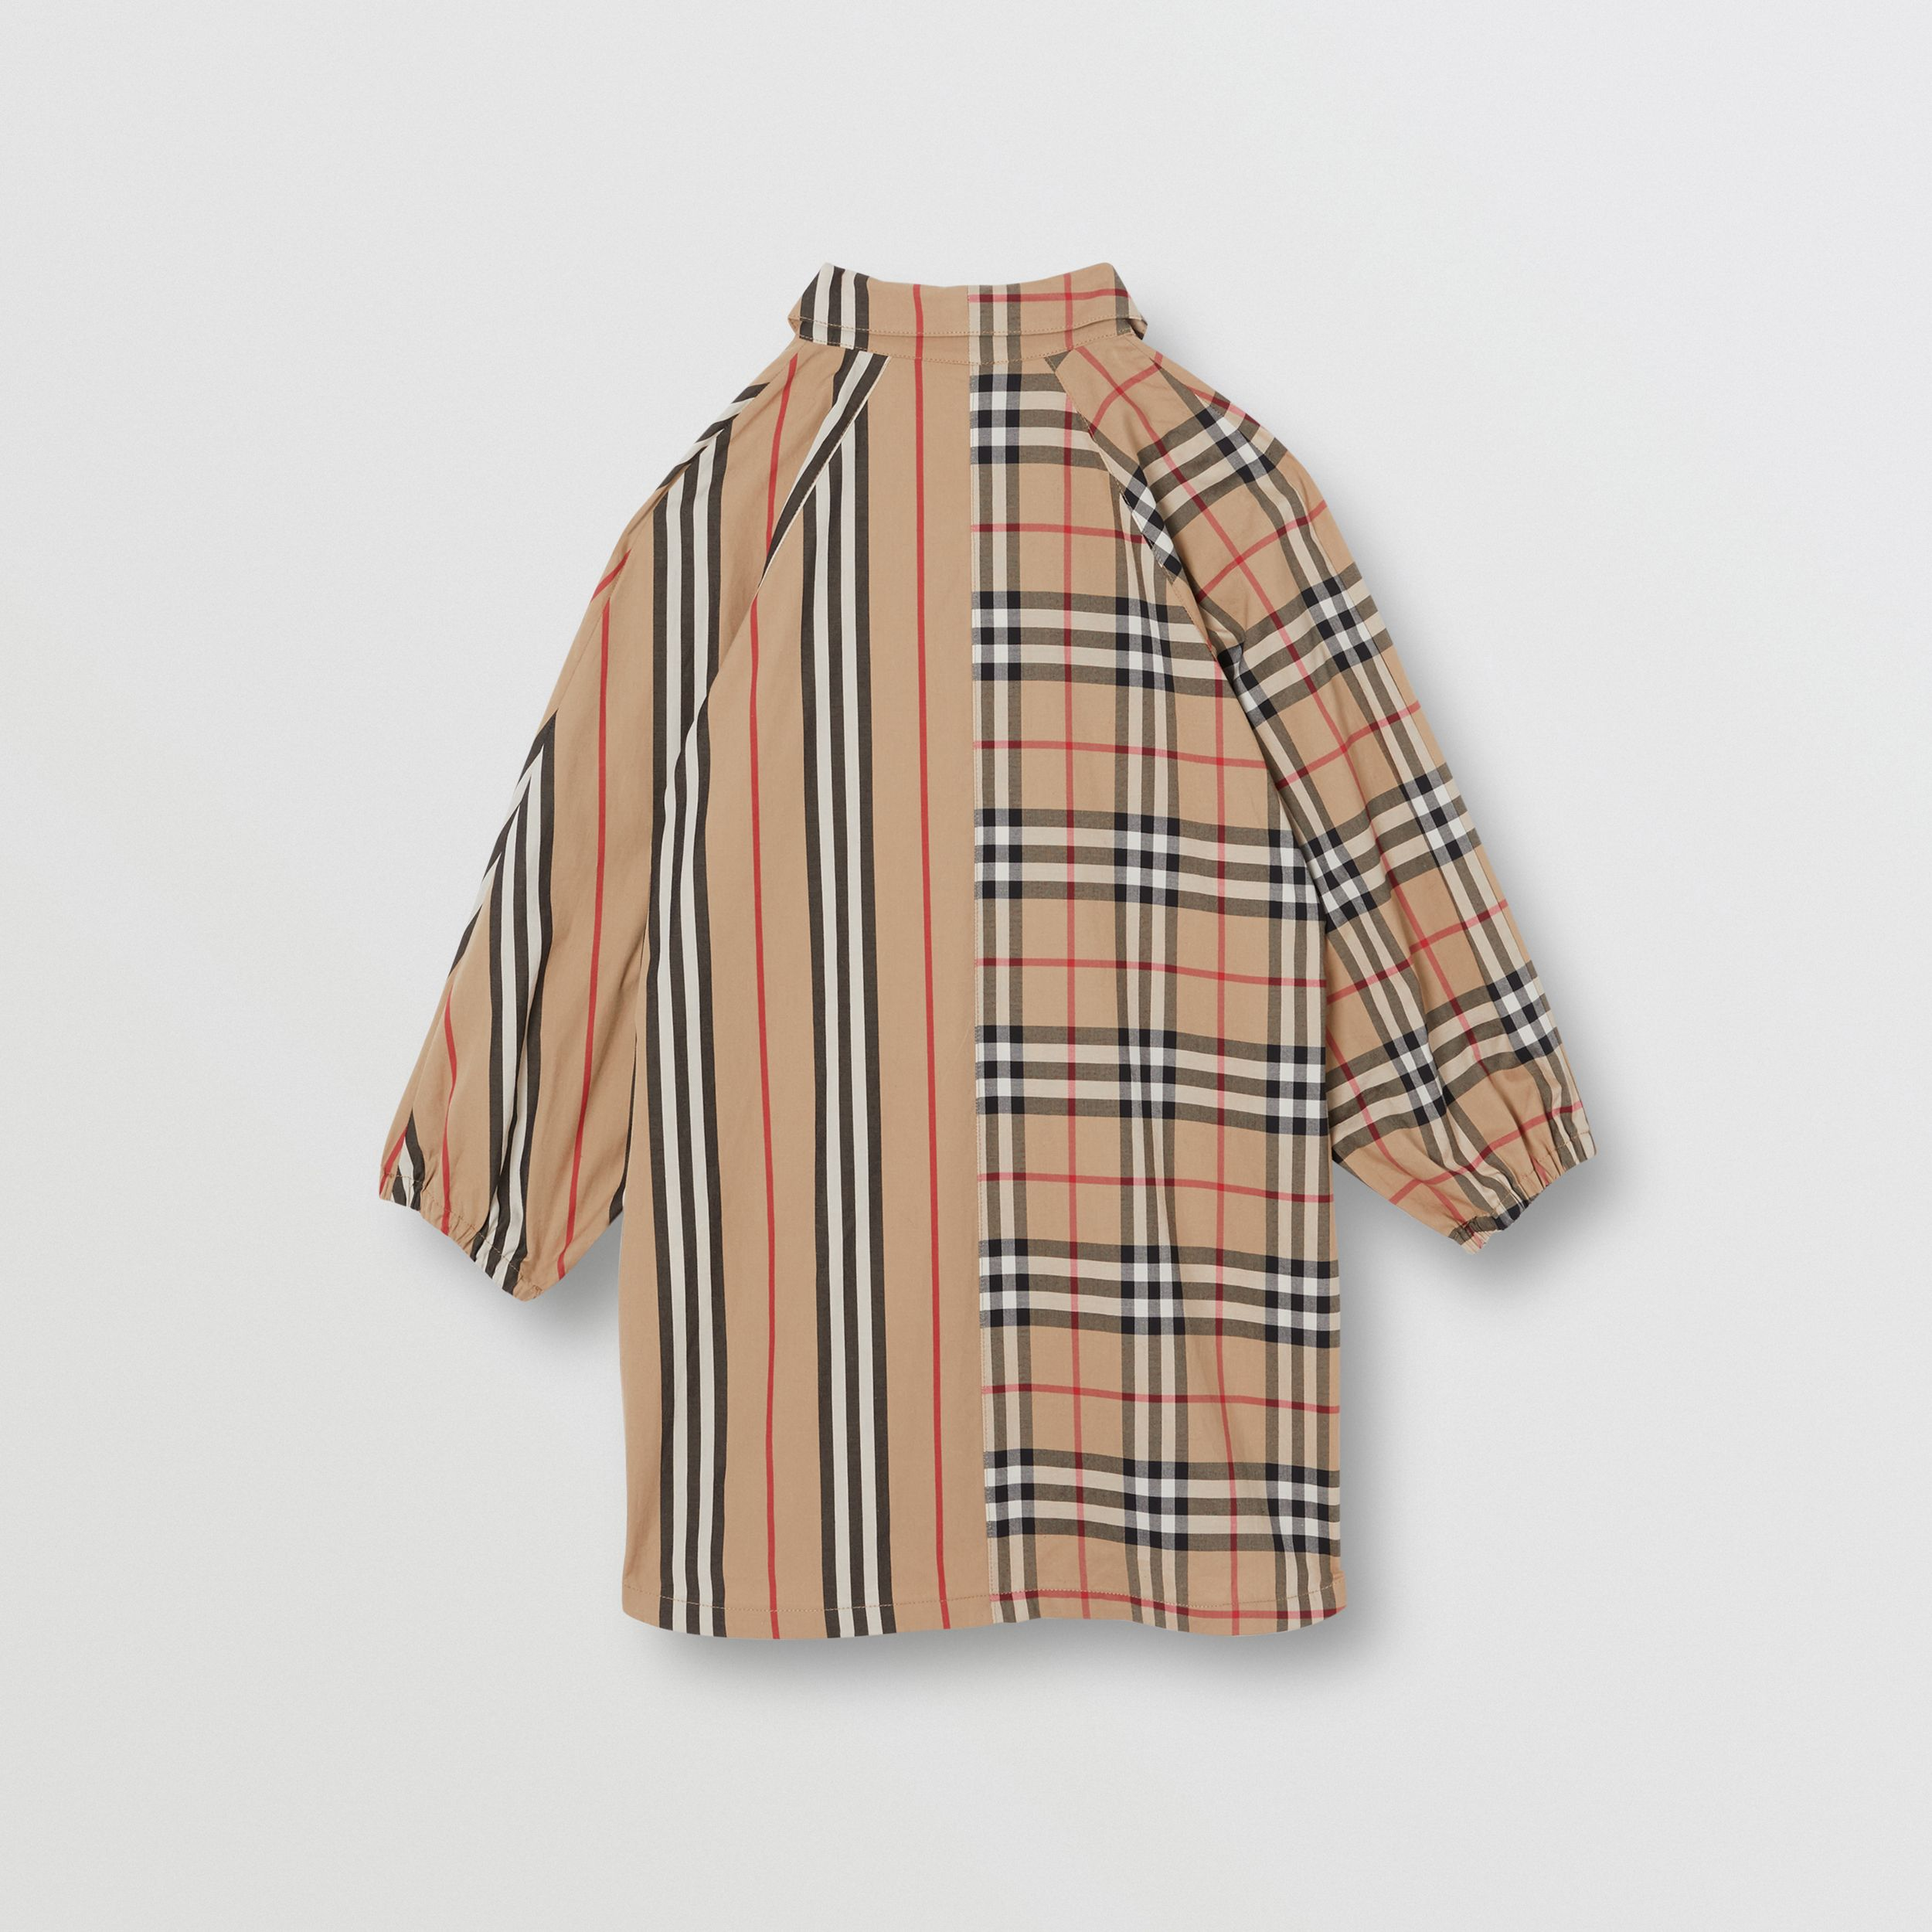 Vintage Check and Icon Stripe Cotton Shirt Dress in Archive Beige | Burberry - 4